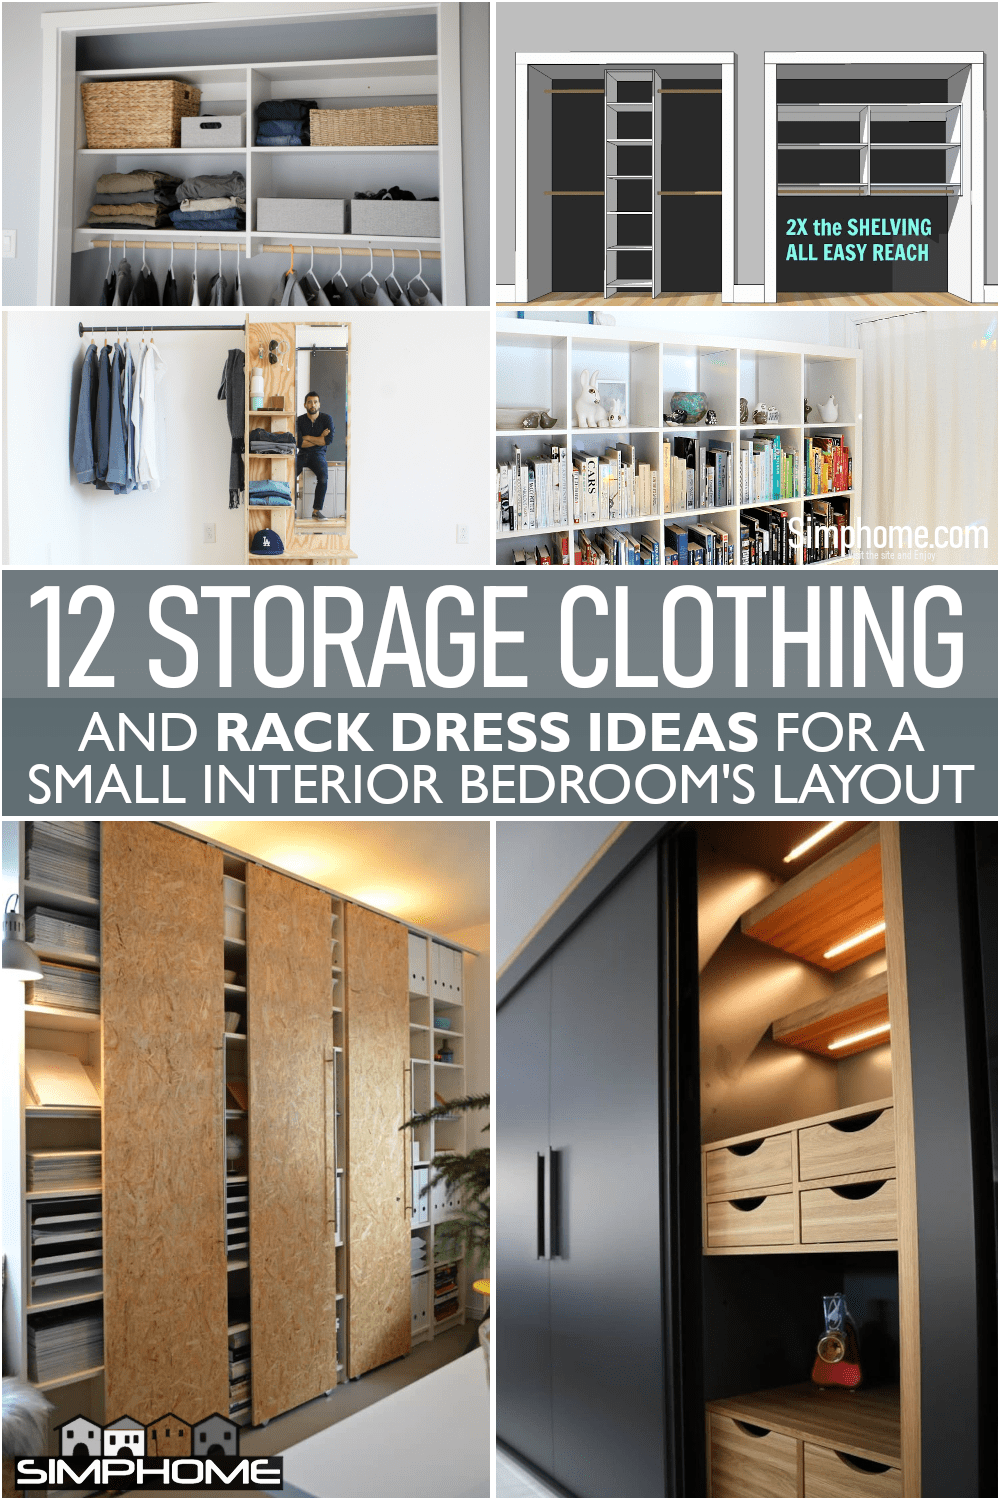 12 Storage Clothing and Rack Dress Ideas via Simphome.comFeatured